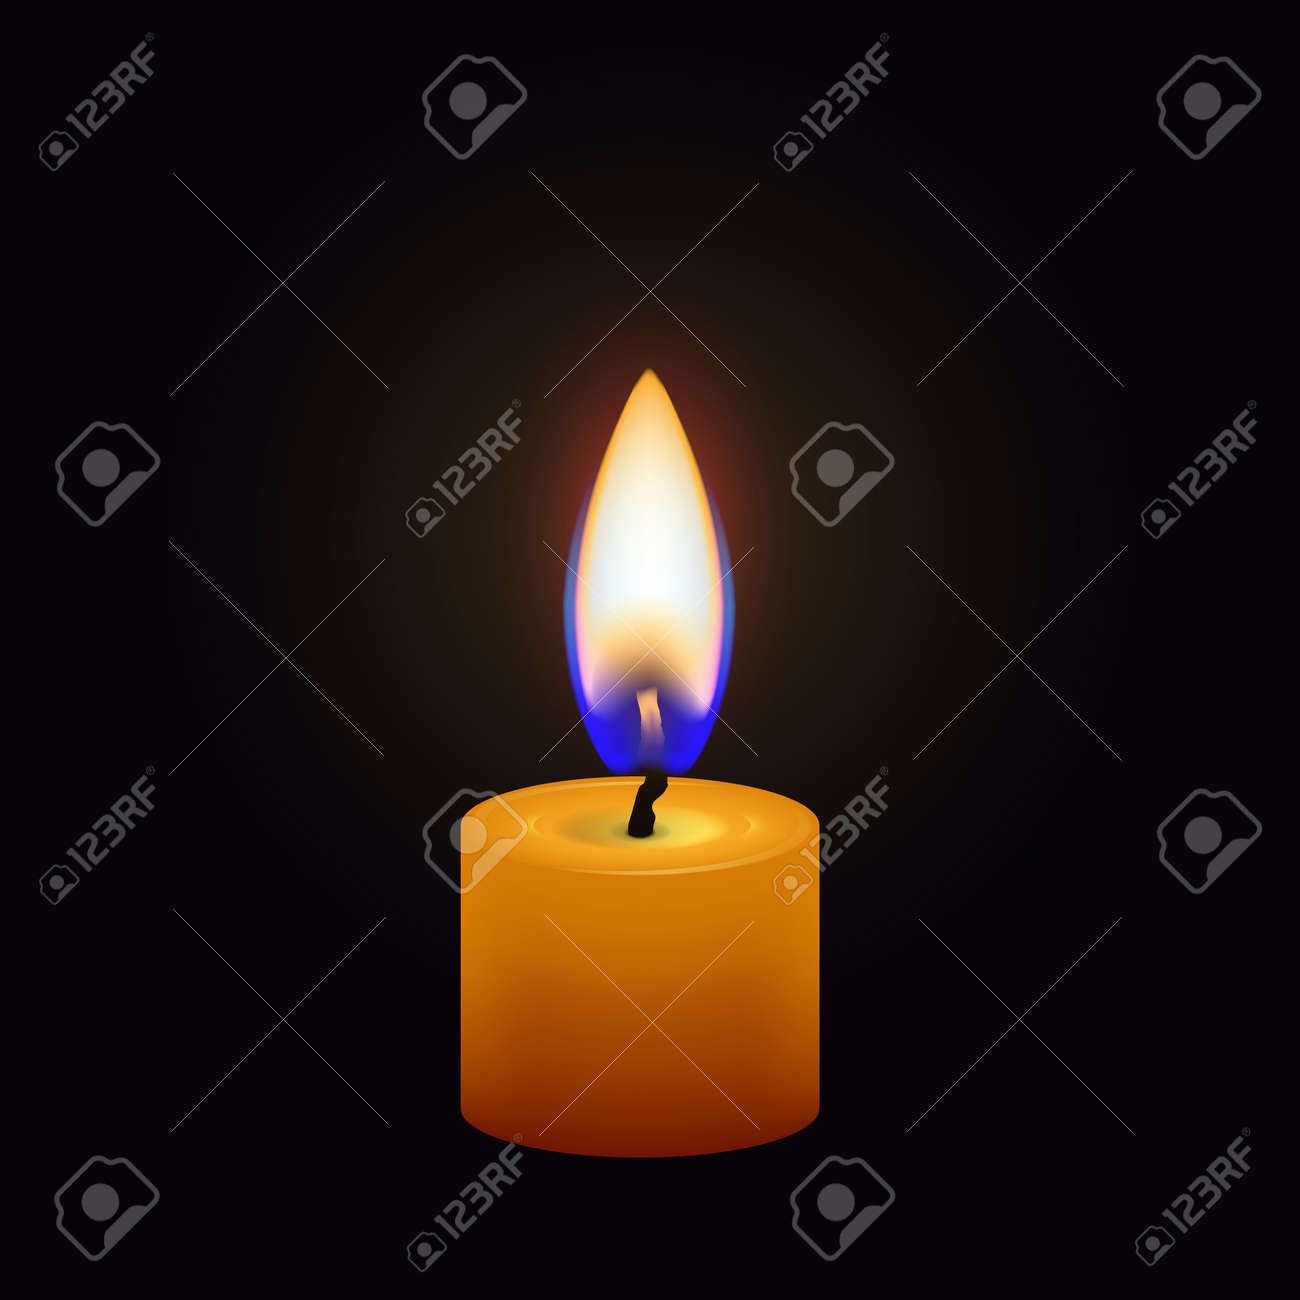 Candle flame close up isolated on a dark background. Realistic vector illustration - 125118835